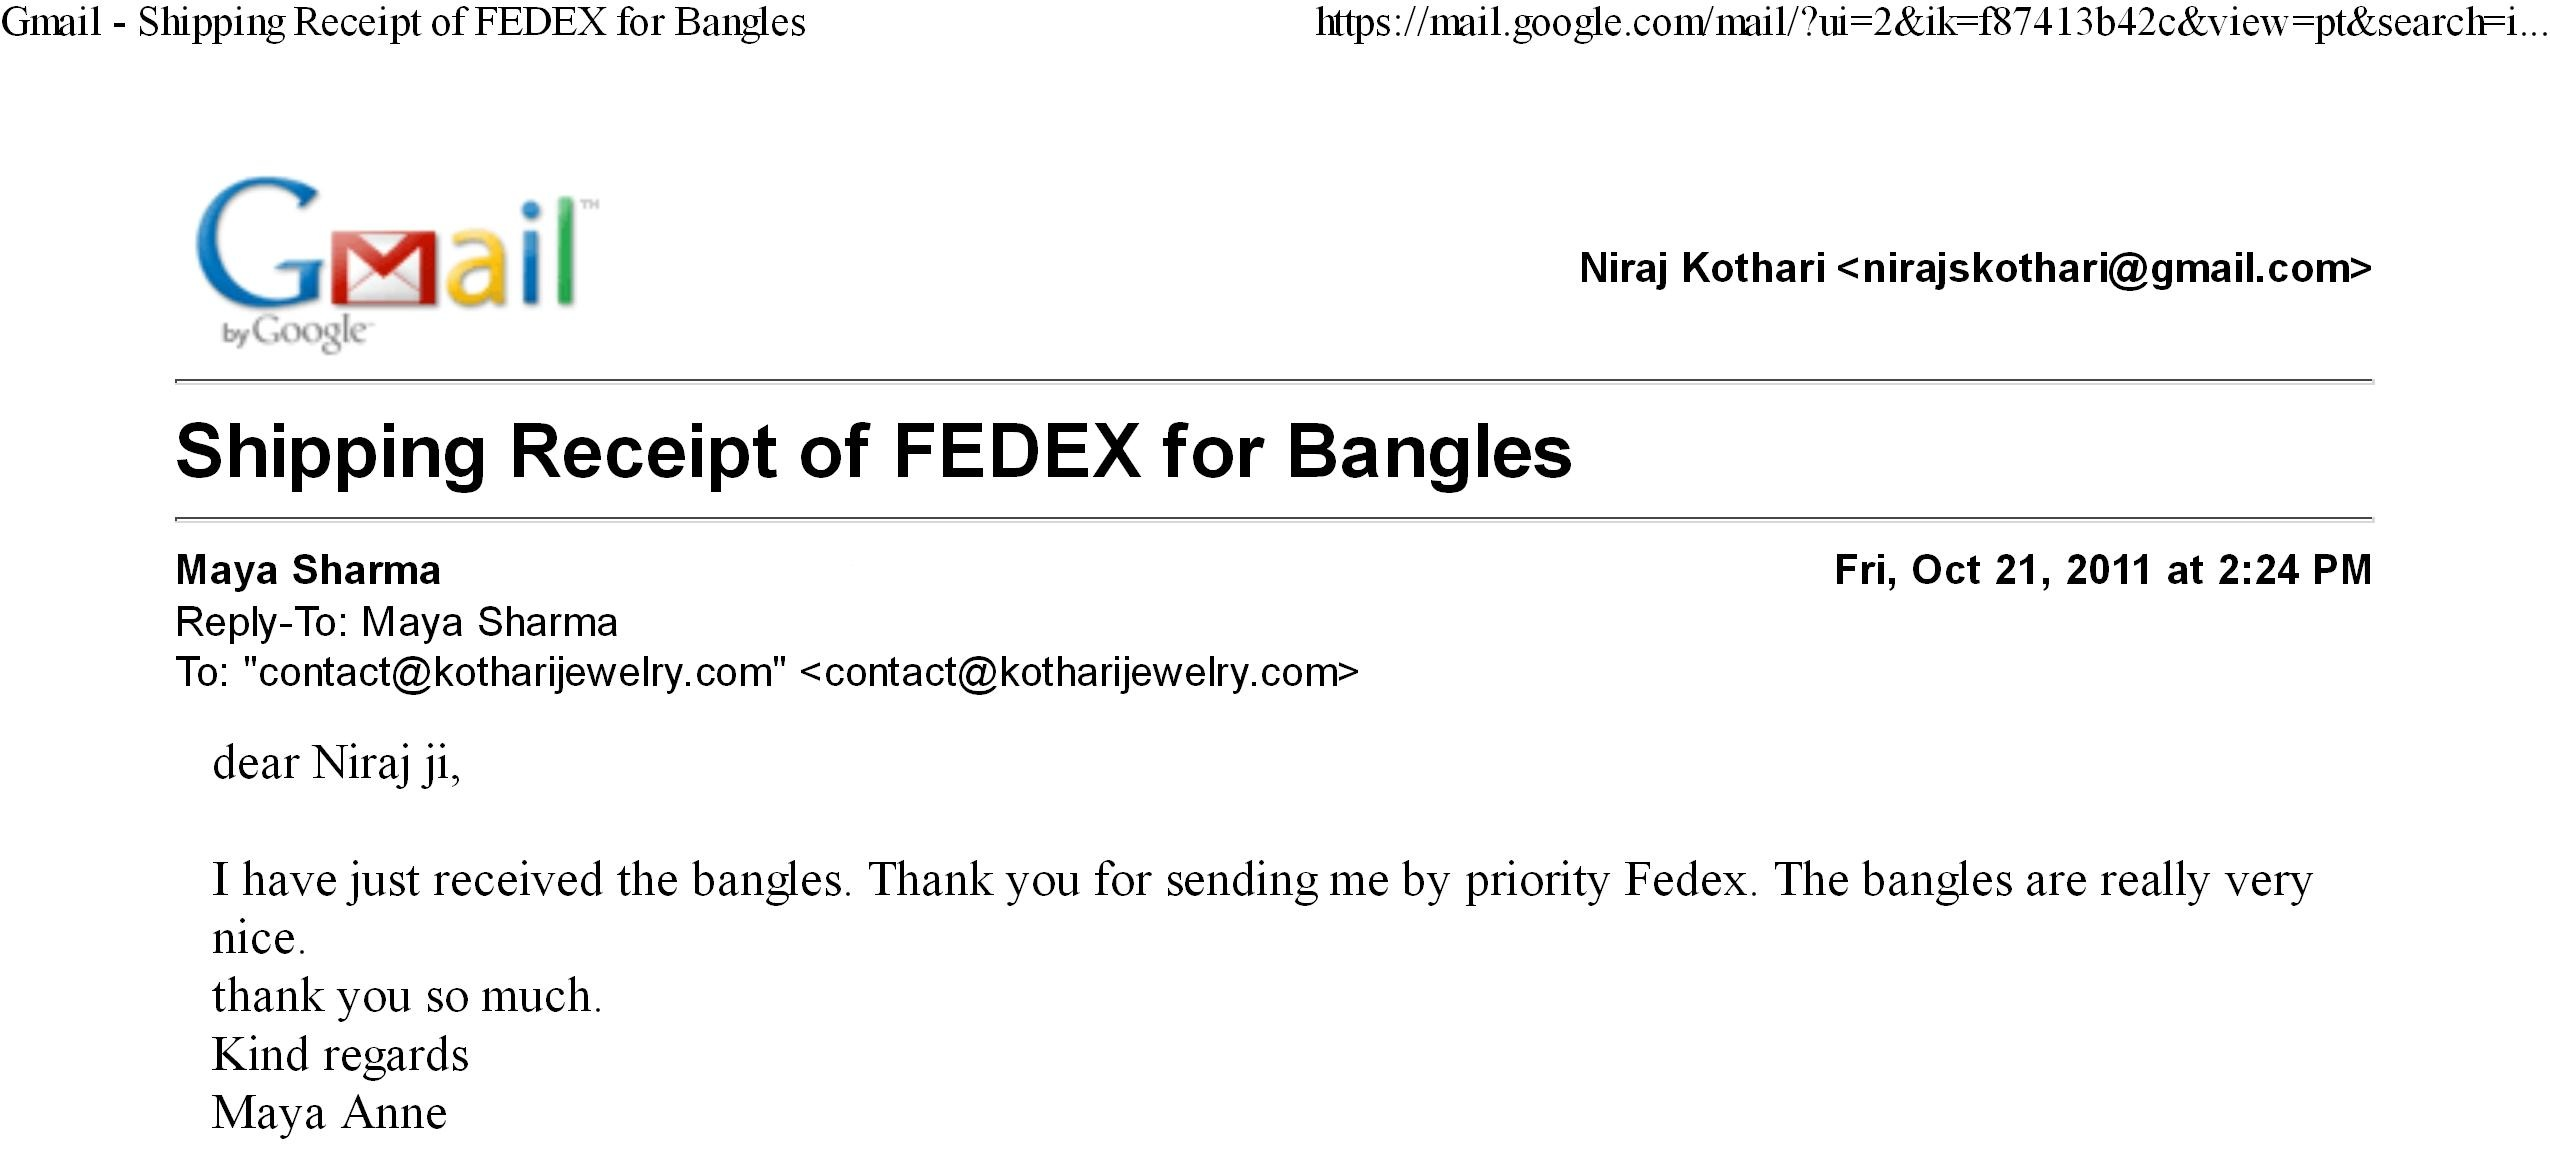 gmail__shipping_receipt_of_fedex_for_bangles_2550